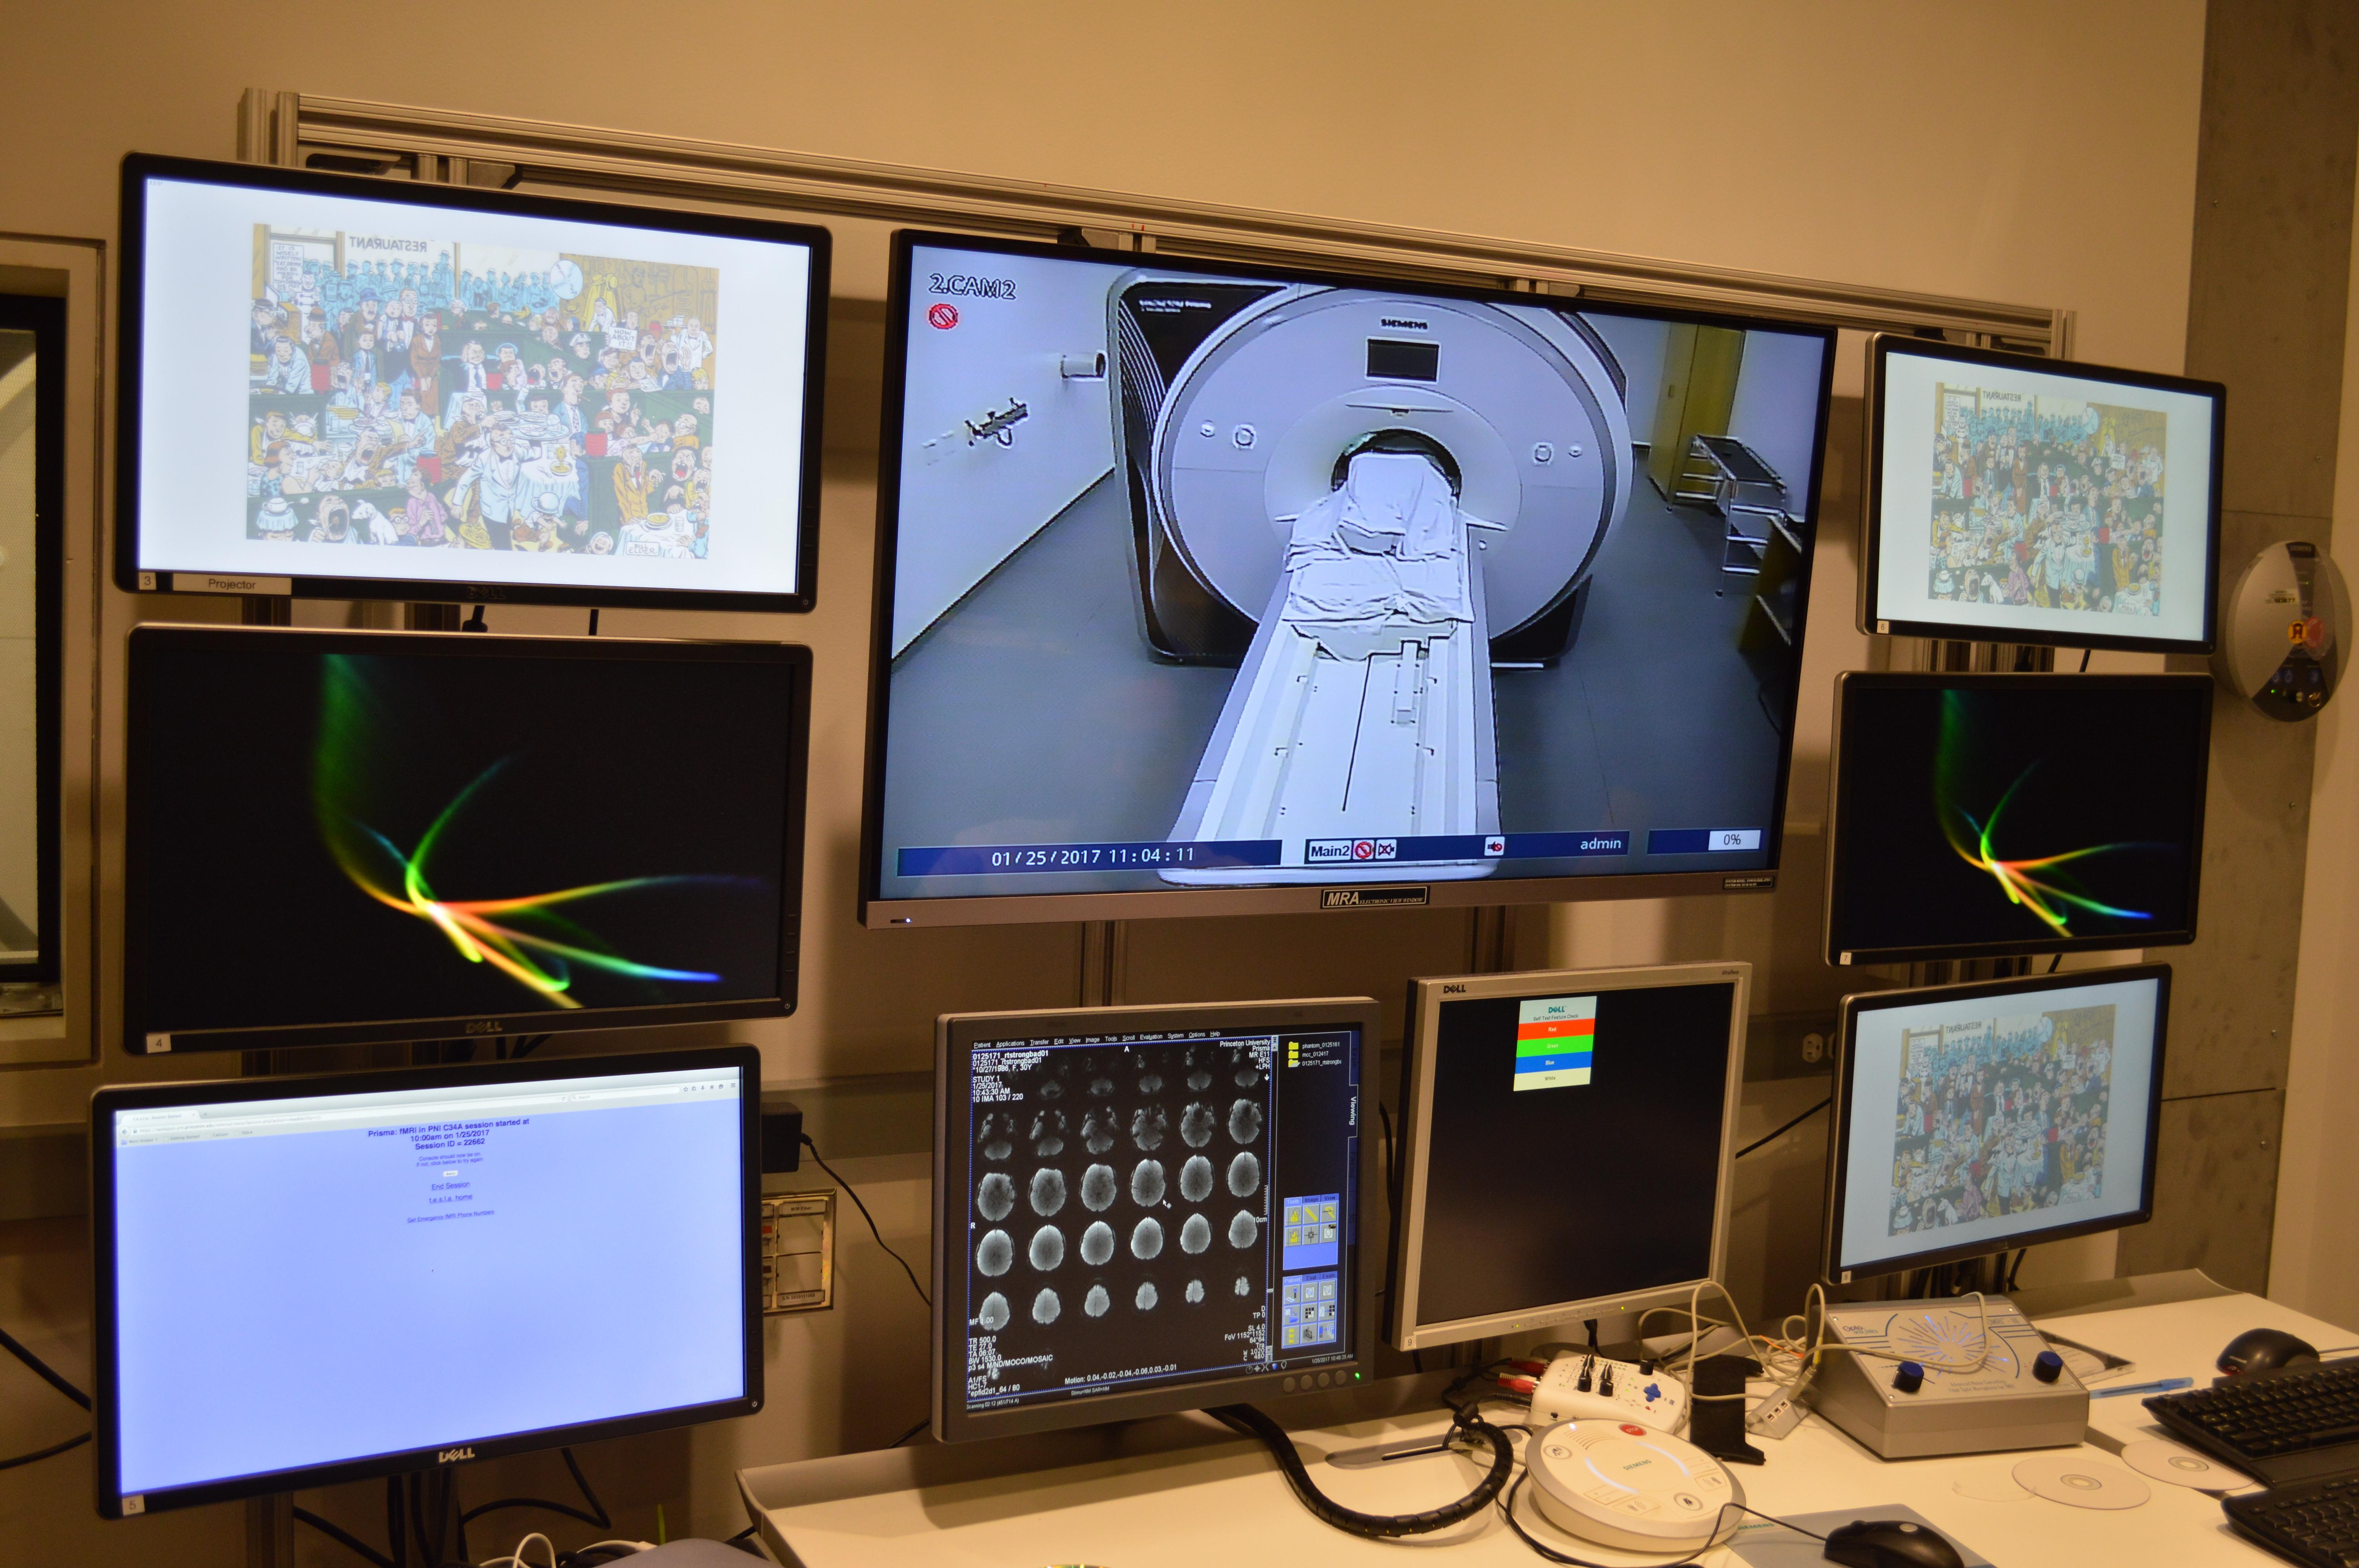 Computer screens showing images, Princeton Neuroscience Institute